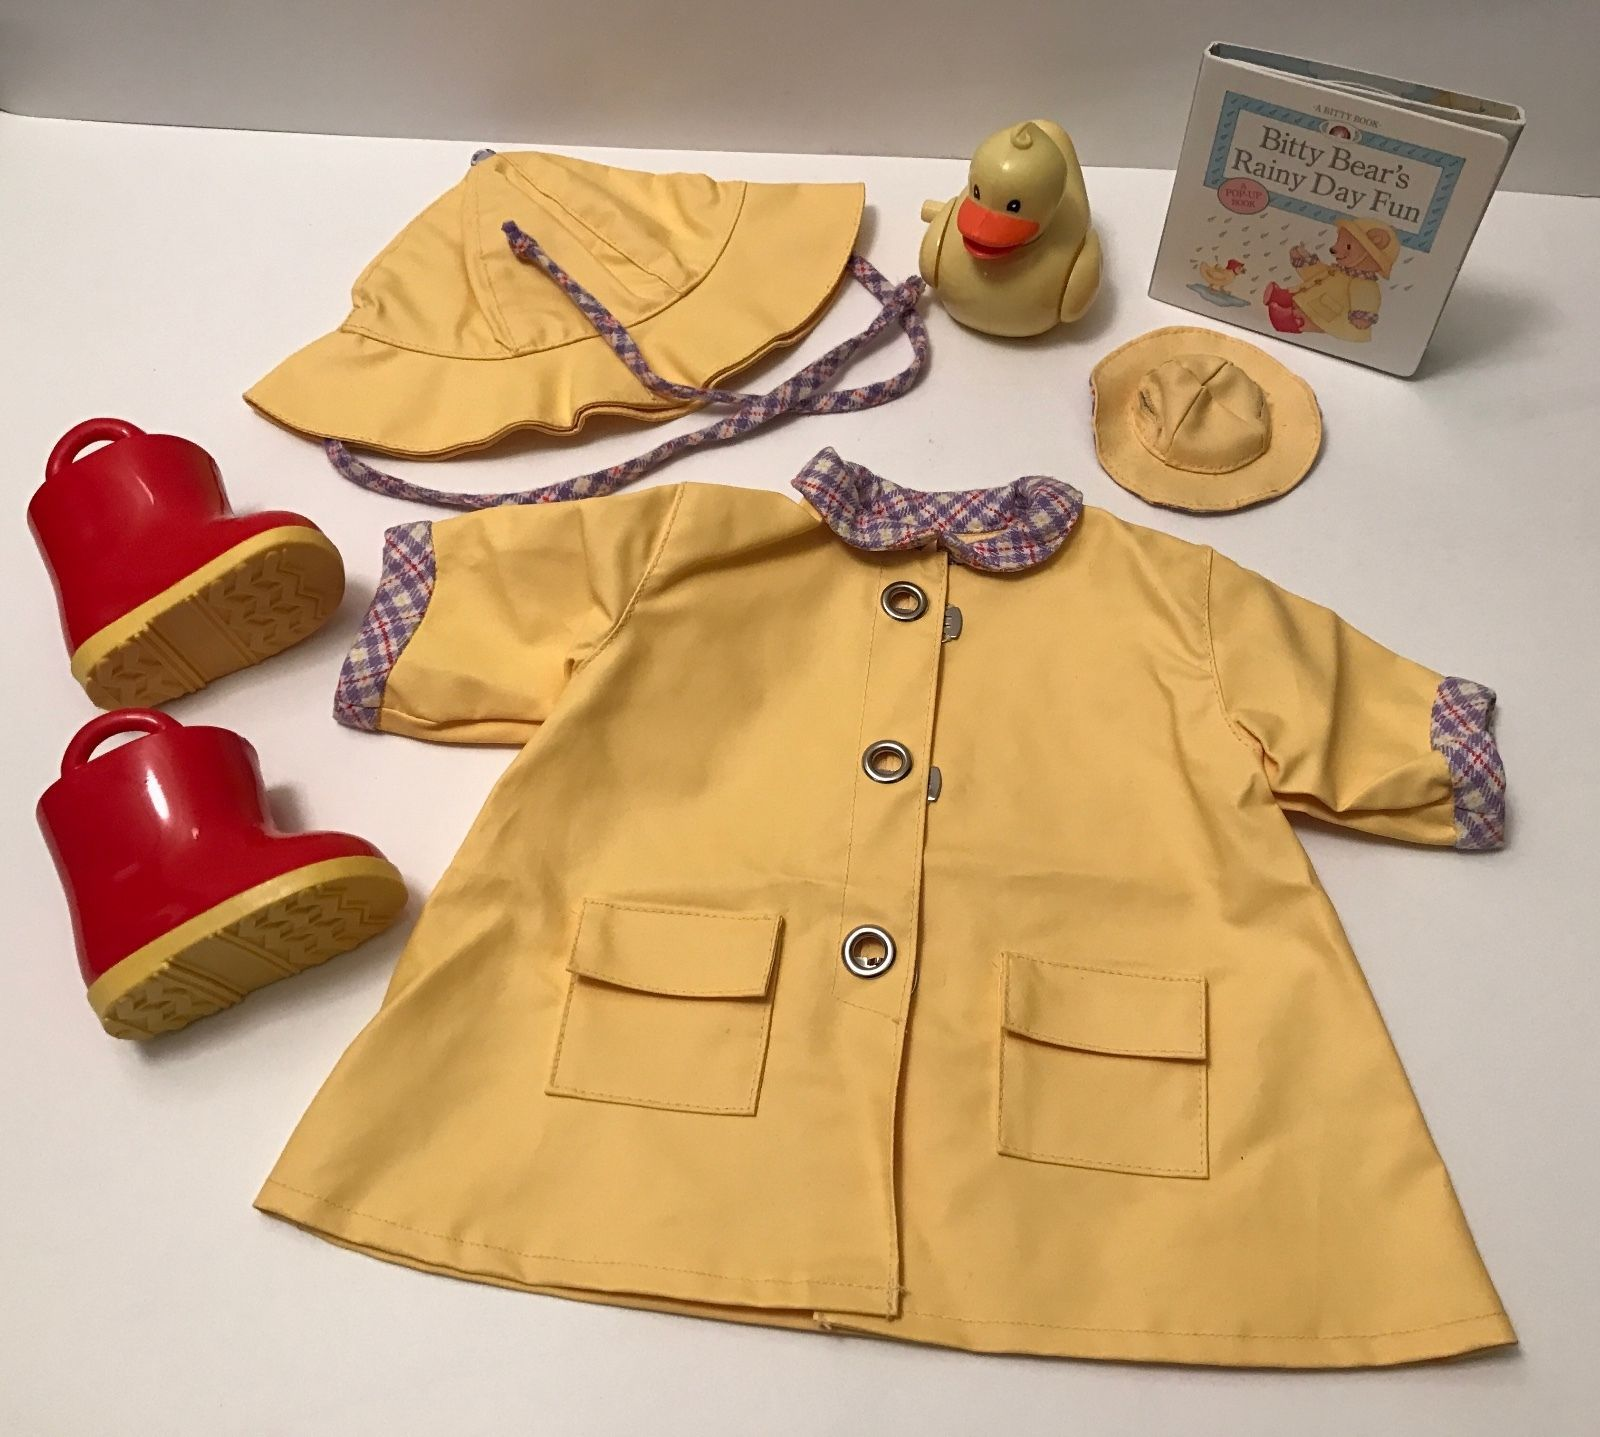 Bitty Baby Rainy Day outfit set retired American Girl Pleasant